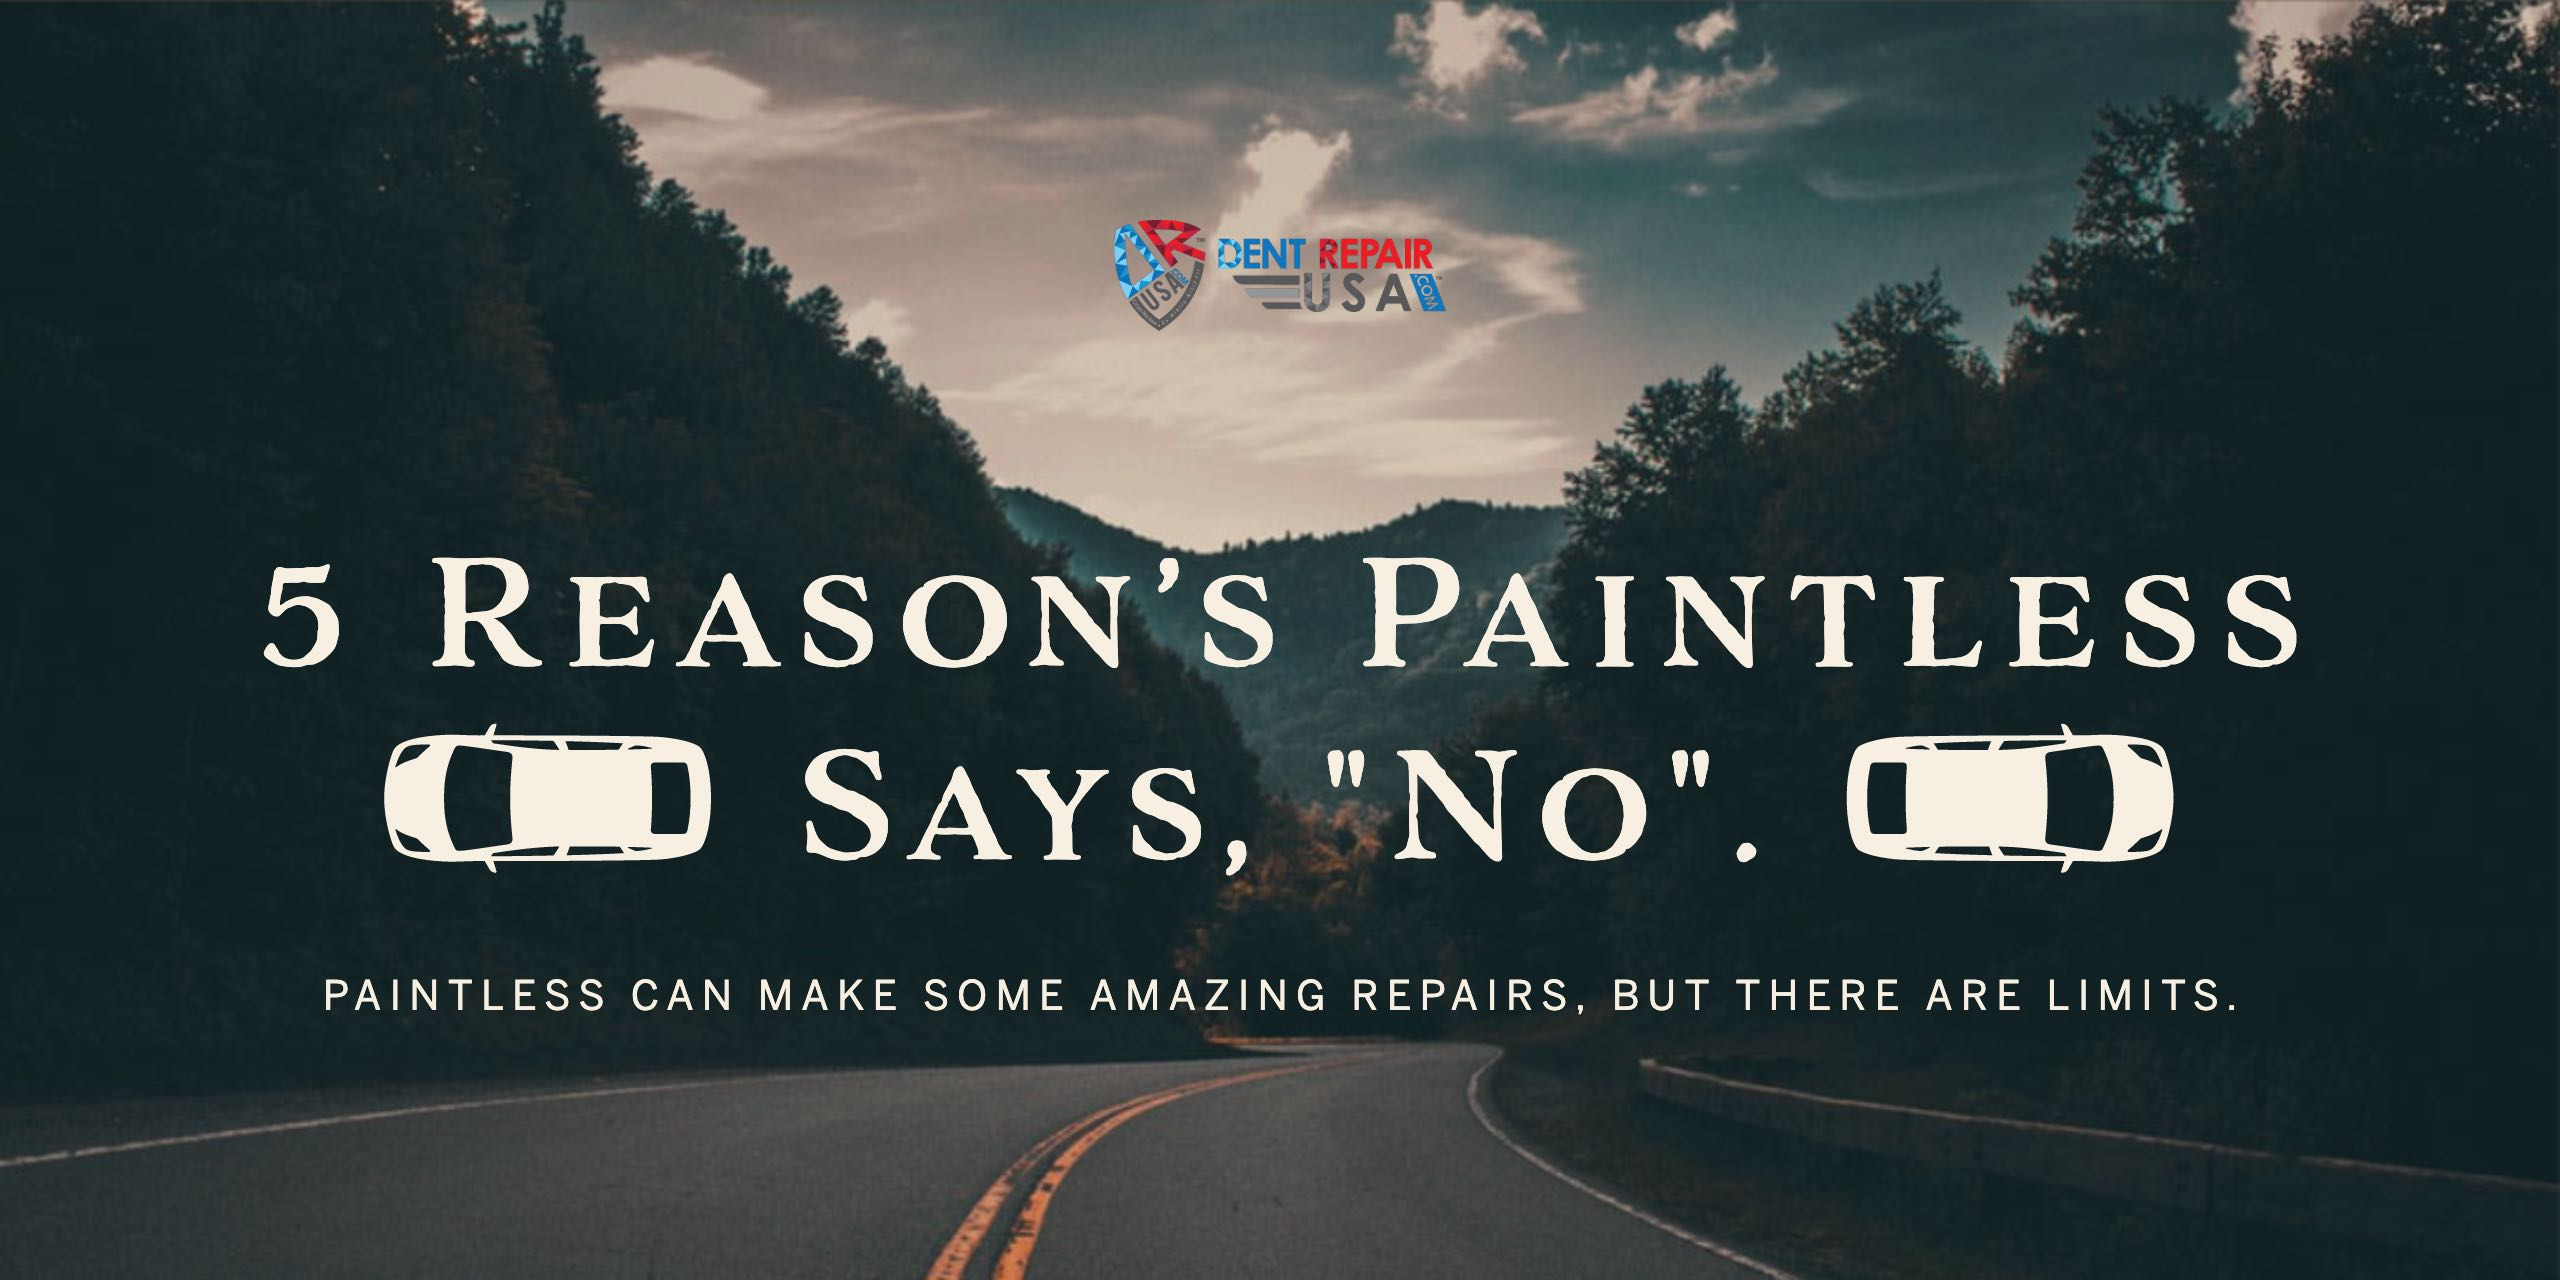 Paintless Dent Removal Near Me   Think, Grow, Educate PDR